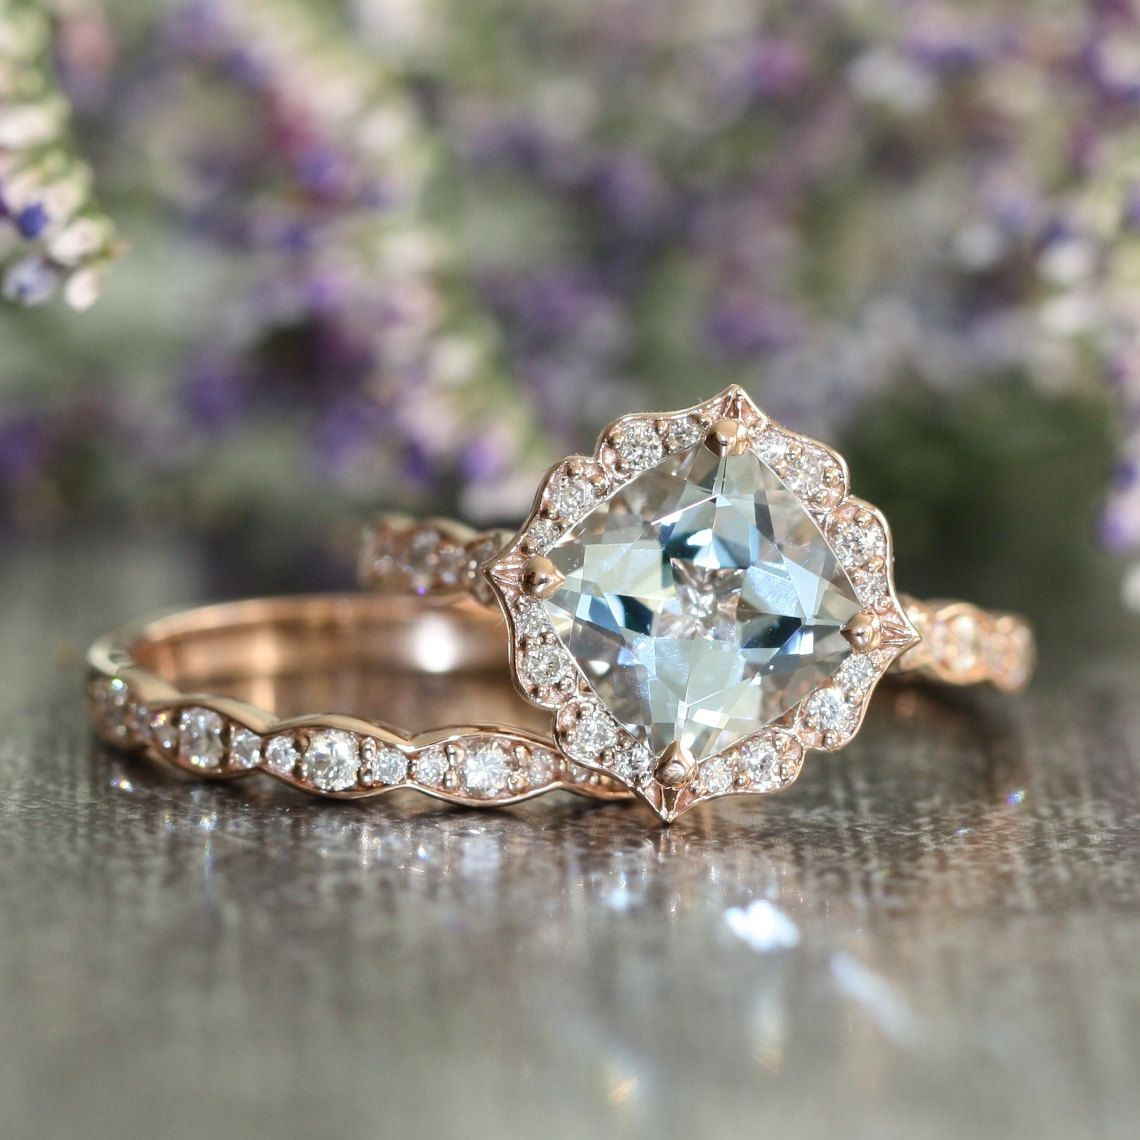 vintage wedding ring sets Vintage Floral Aquamarine Engagement Ring and Scalloped Diamond Wedding Band Bridal Set in 14k Rose Gold mm Cushion Gemstone Ring Set